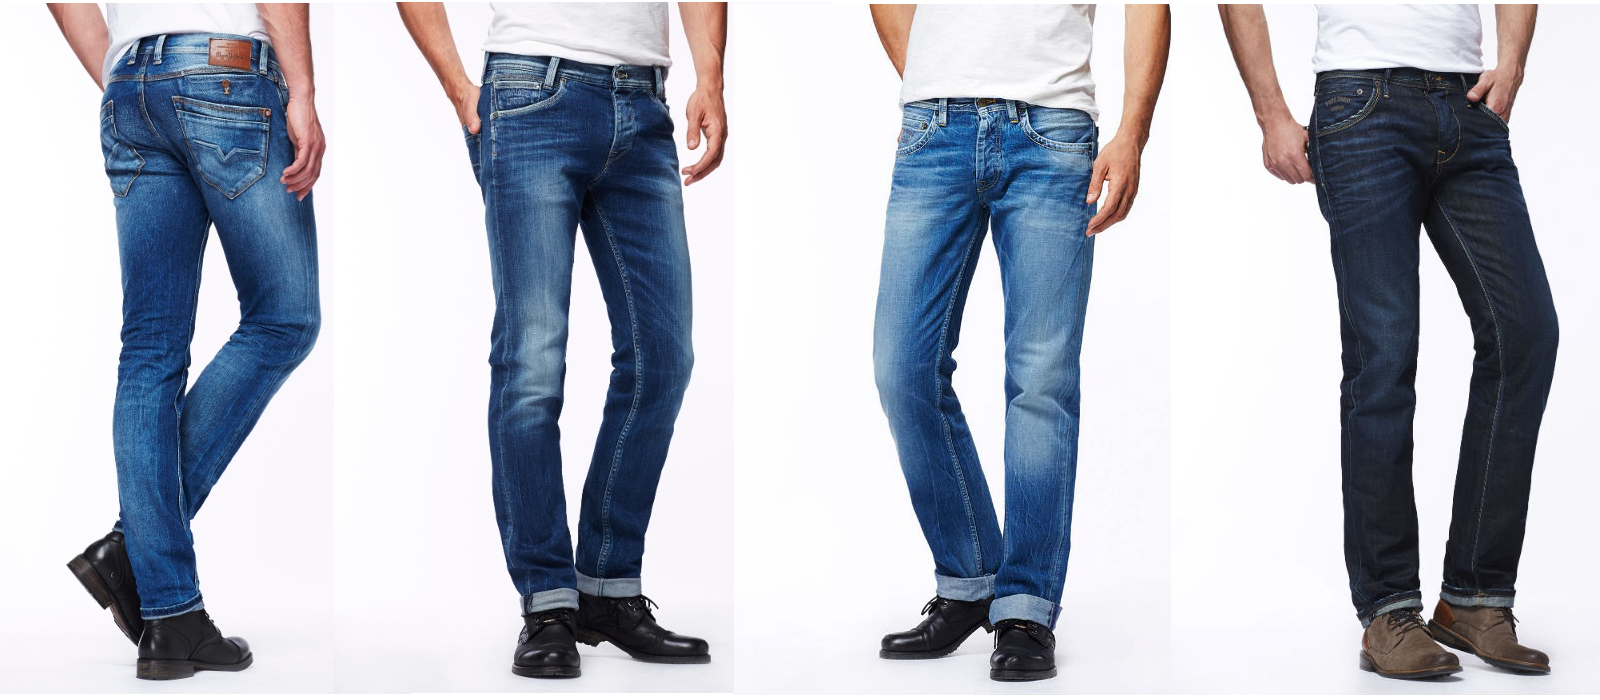 black and blue jeans.jpg